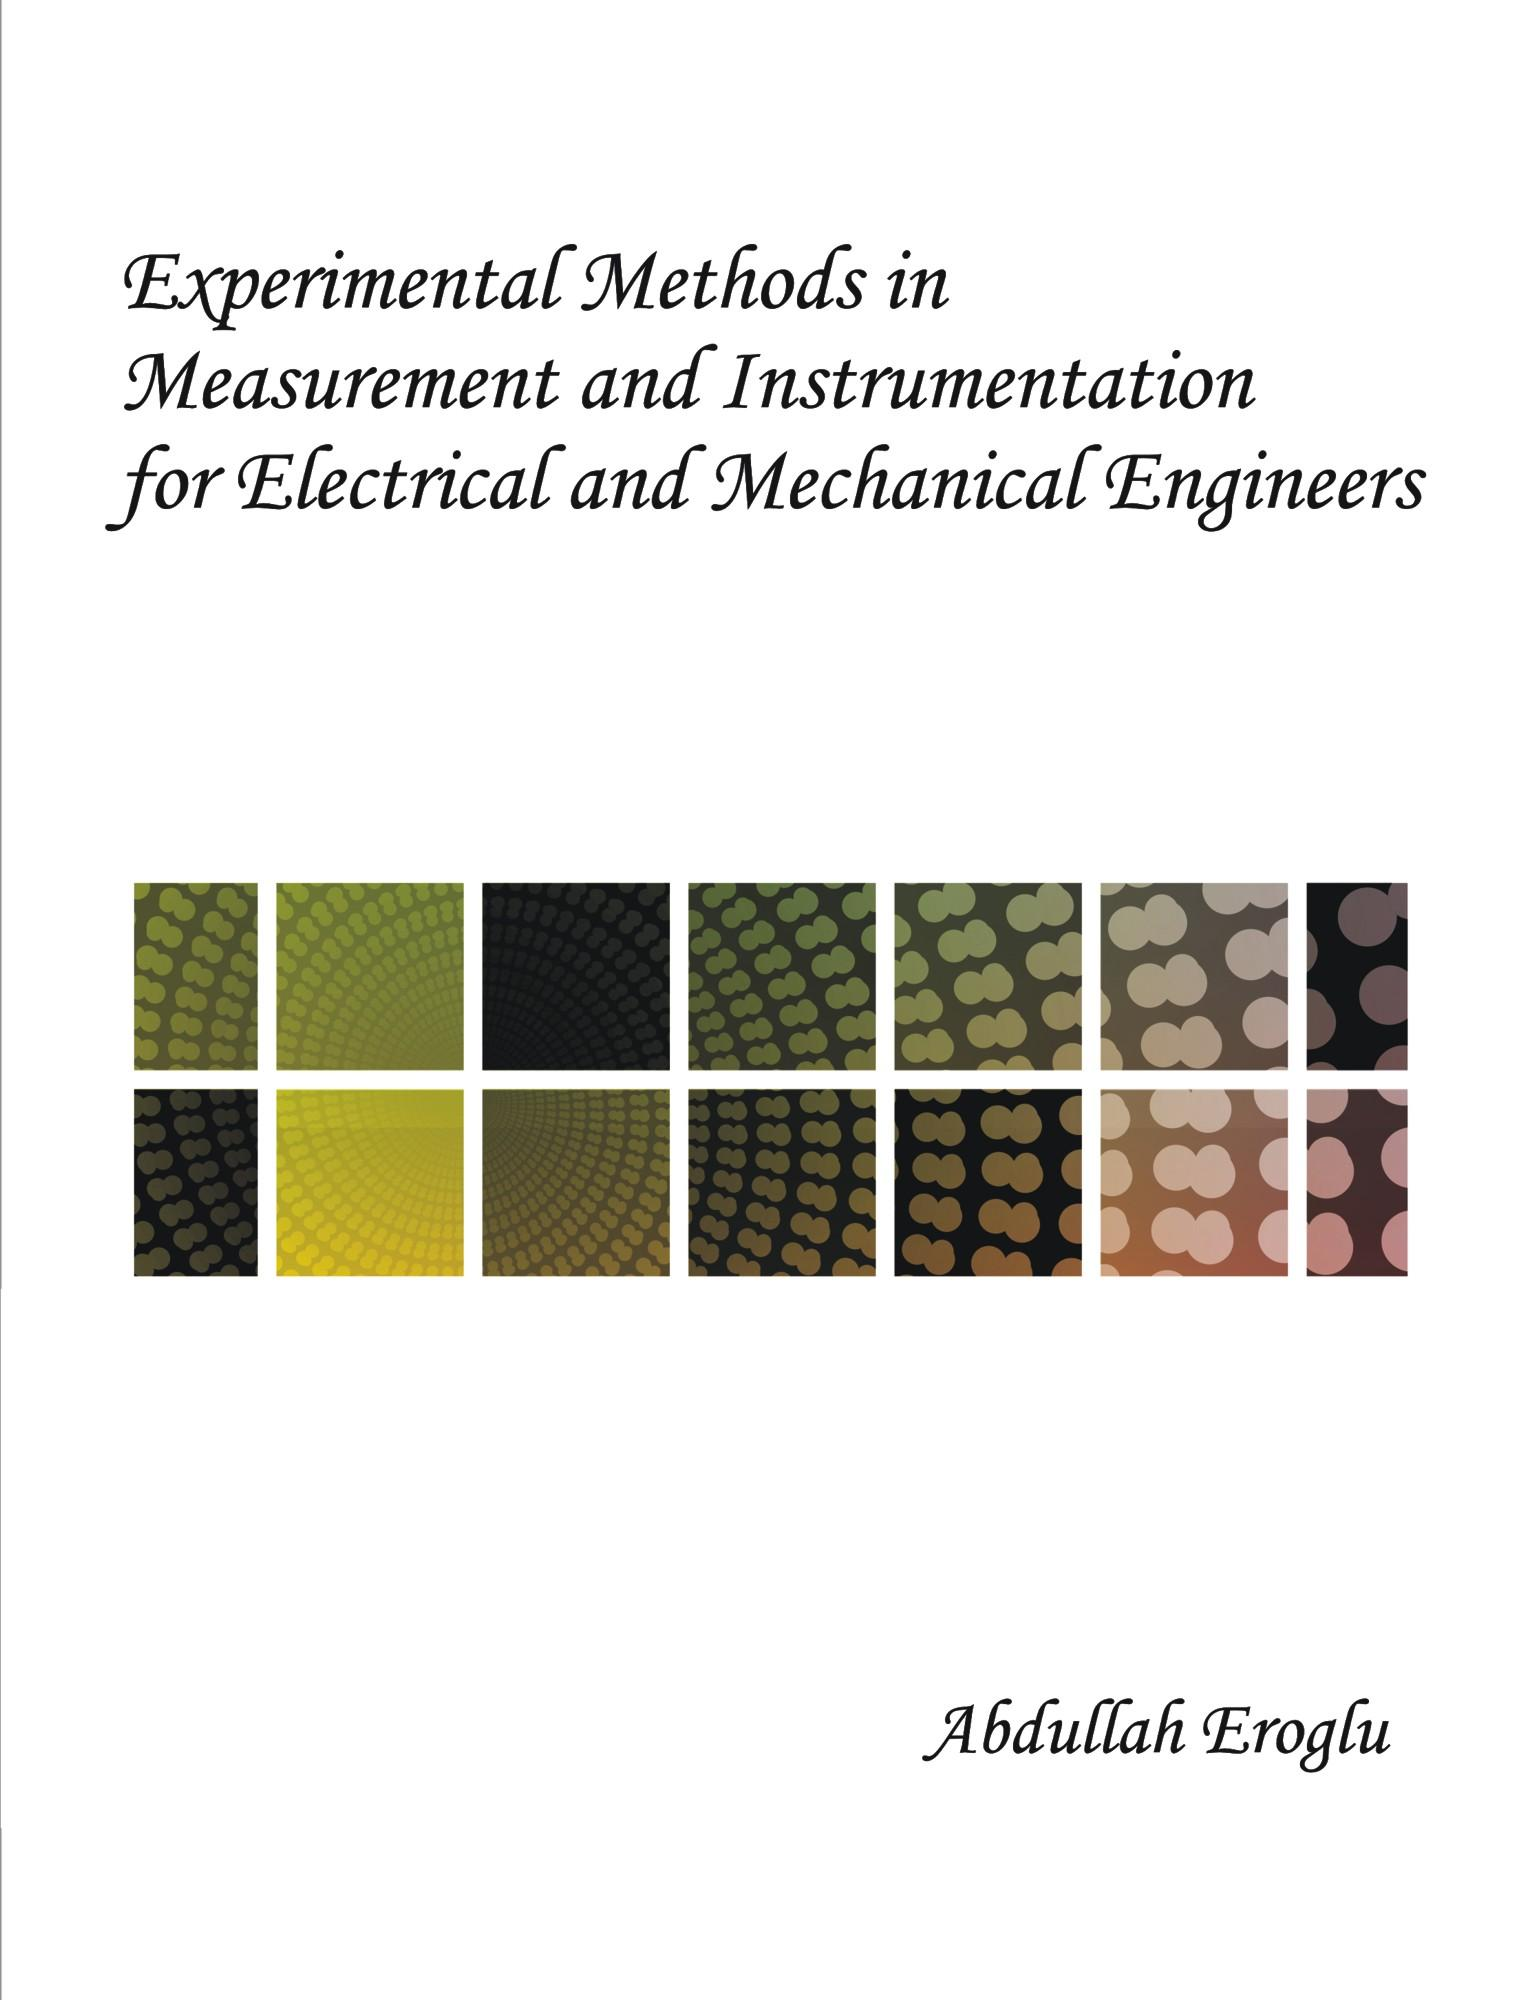 Experimental Methods in Measurement and Instrumentation for Electrical and Mechanical Engineers EB9781599428130